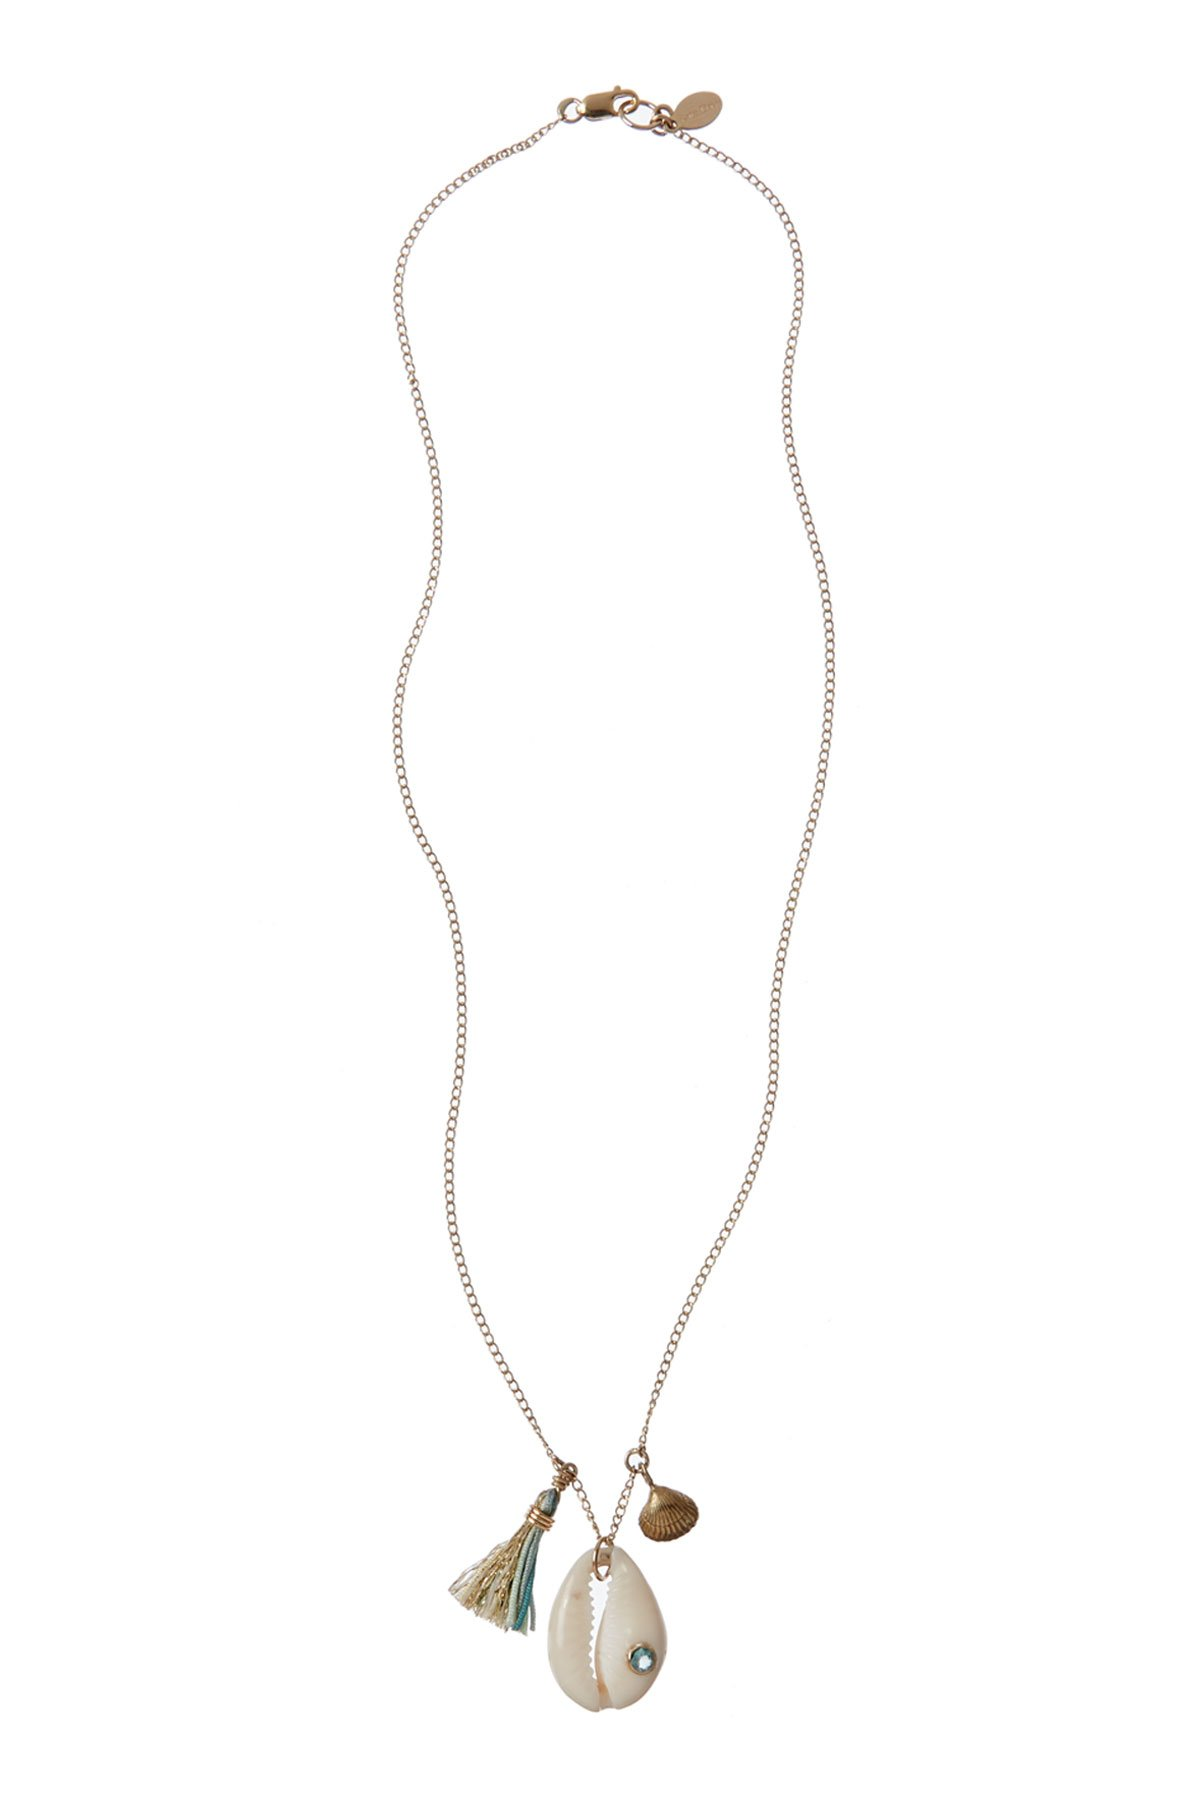 Cowrie Charm Necklace - Erinite Spinel 1